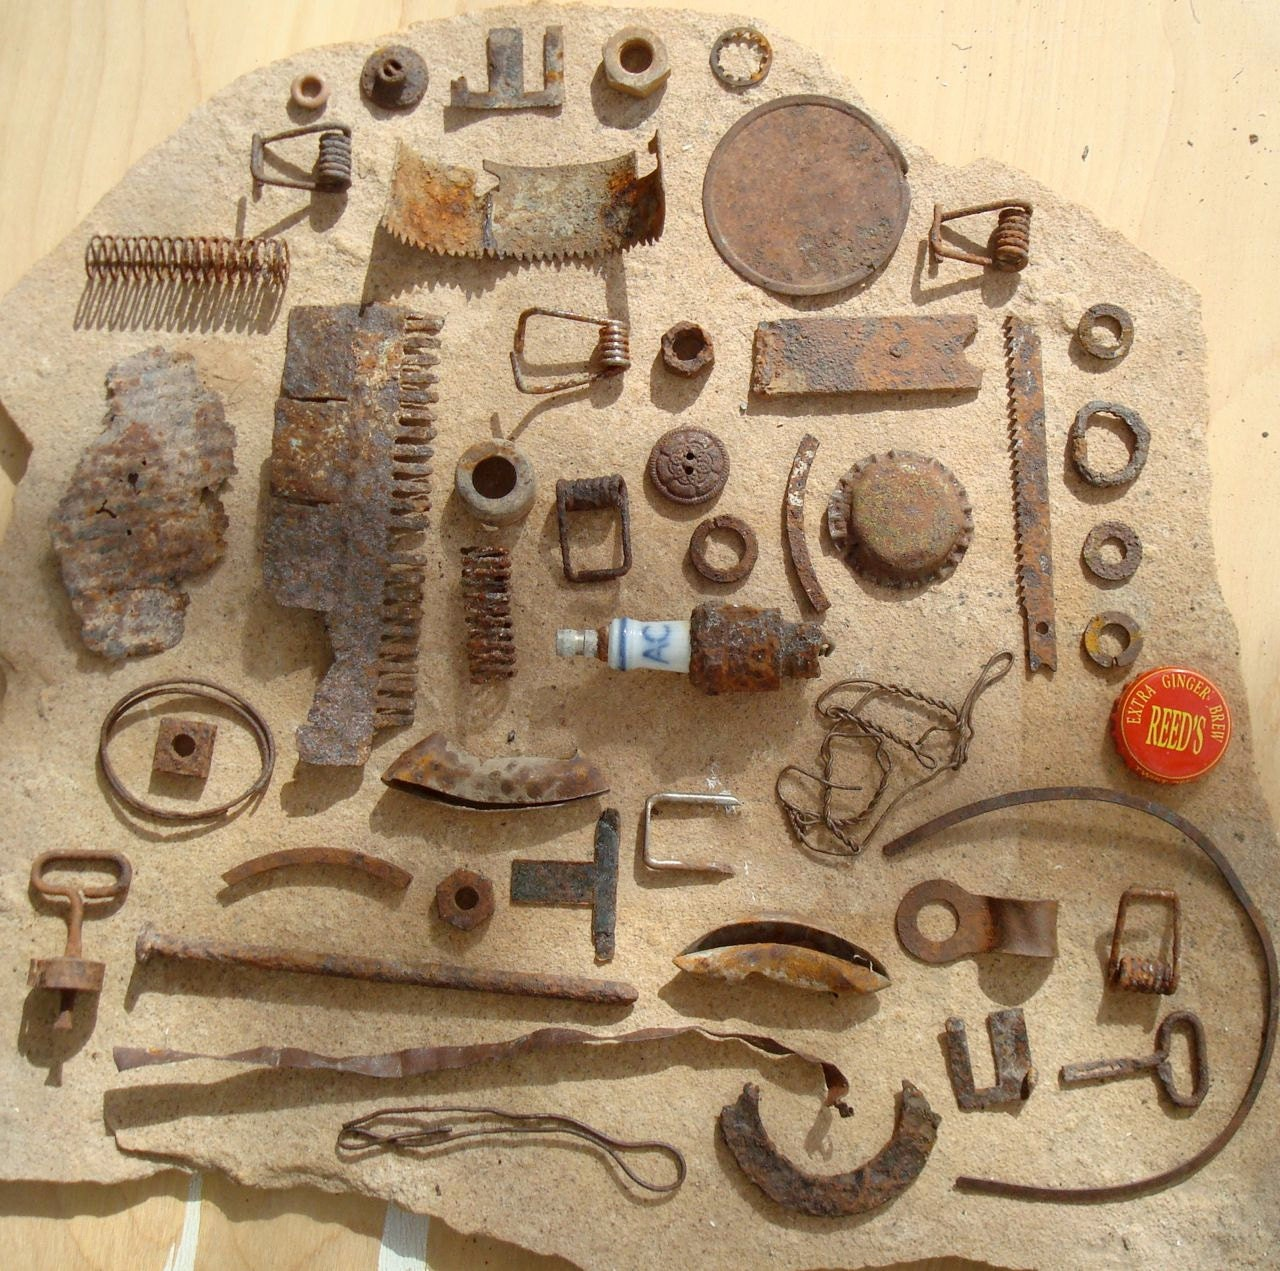 Rusty Metal Bits & Pieces Found Objects Supplies for